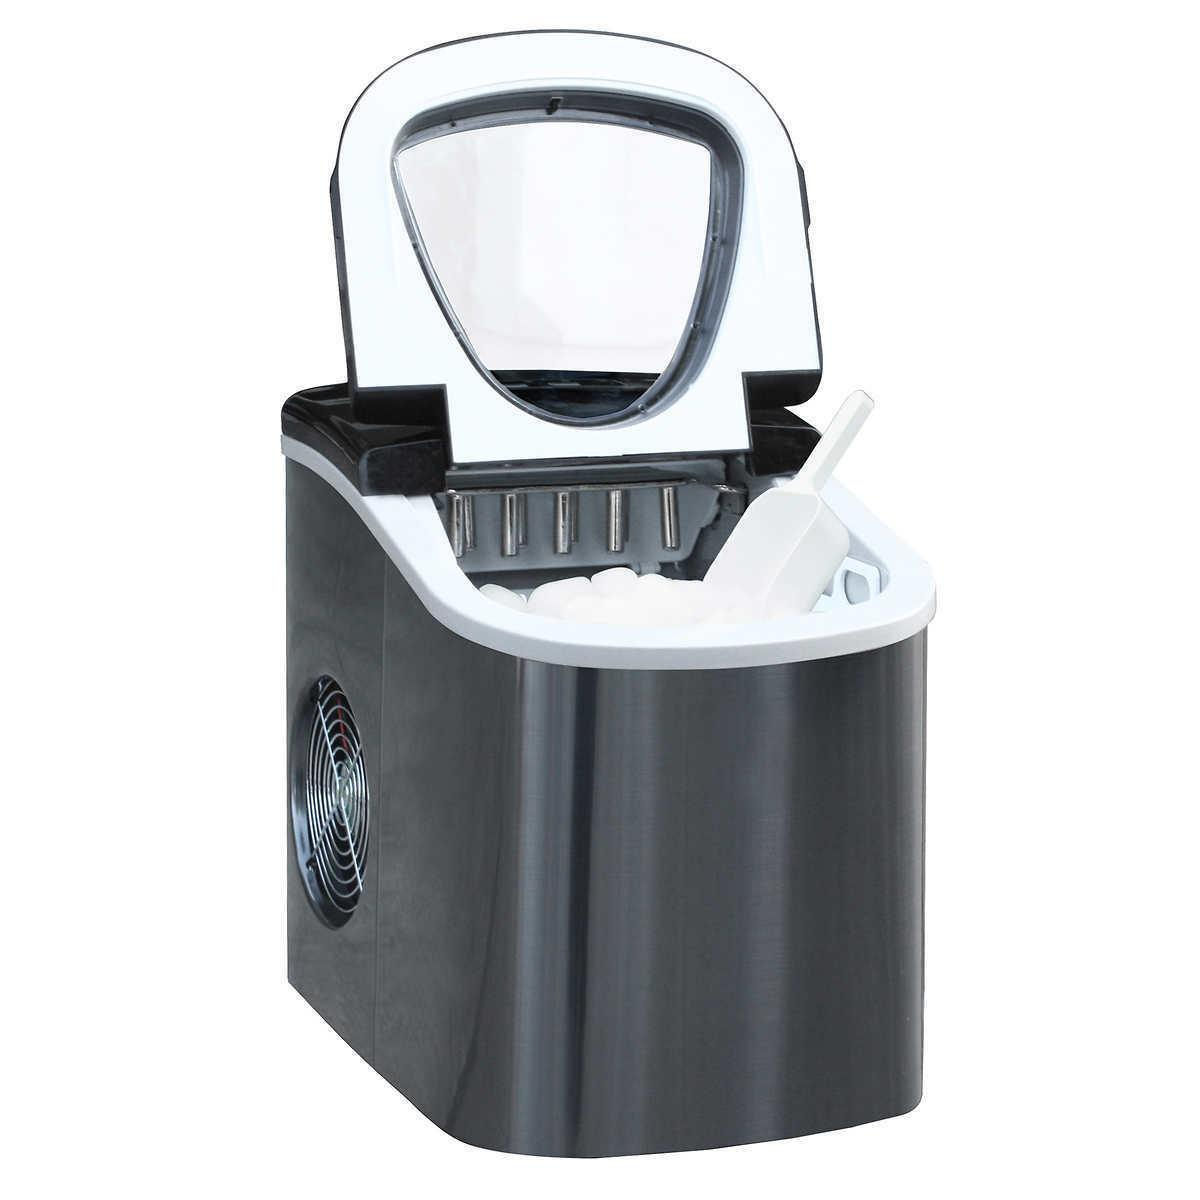 Portable Quiet Self Cleaning Stainless Steel Kitchen